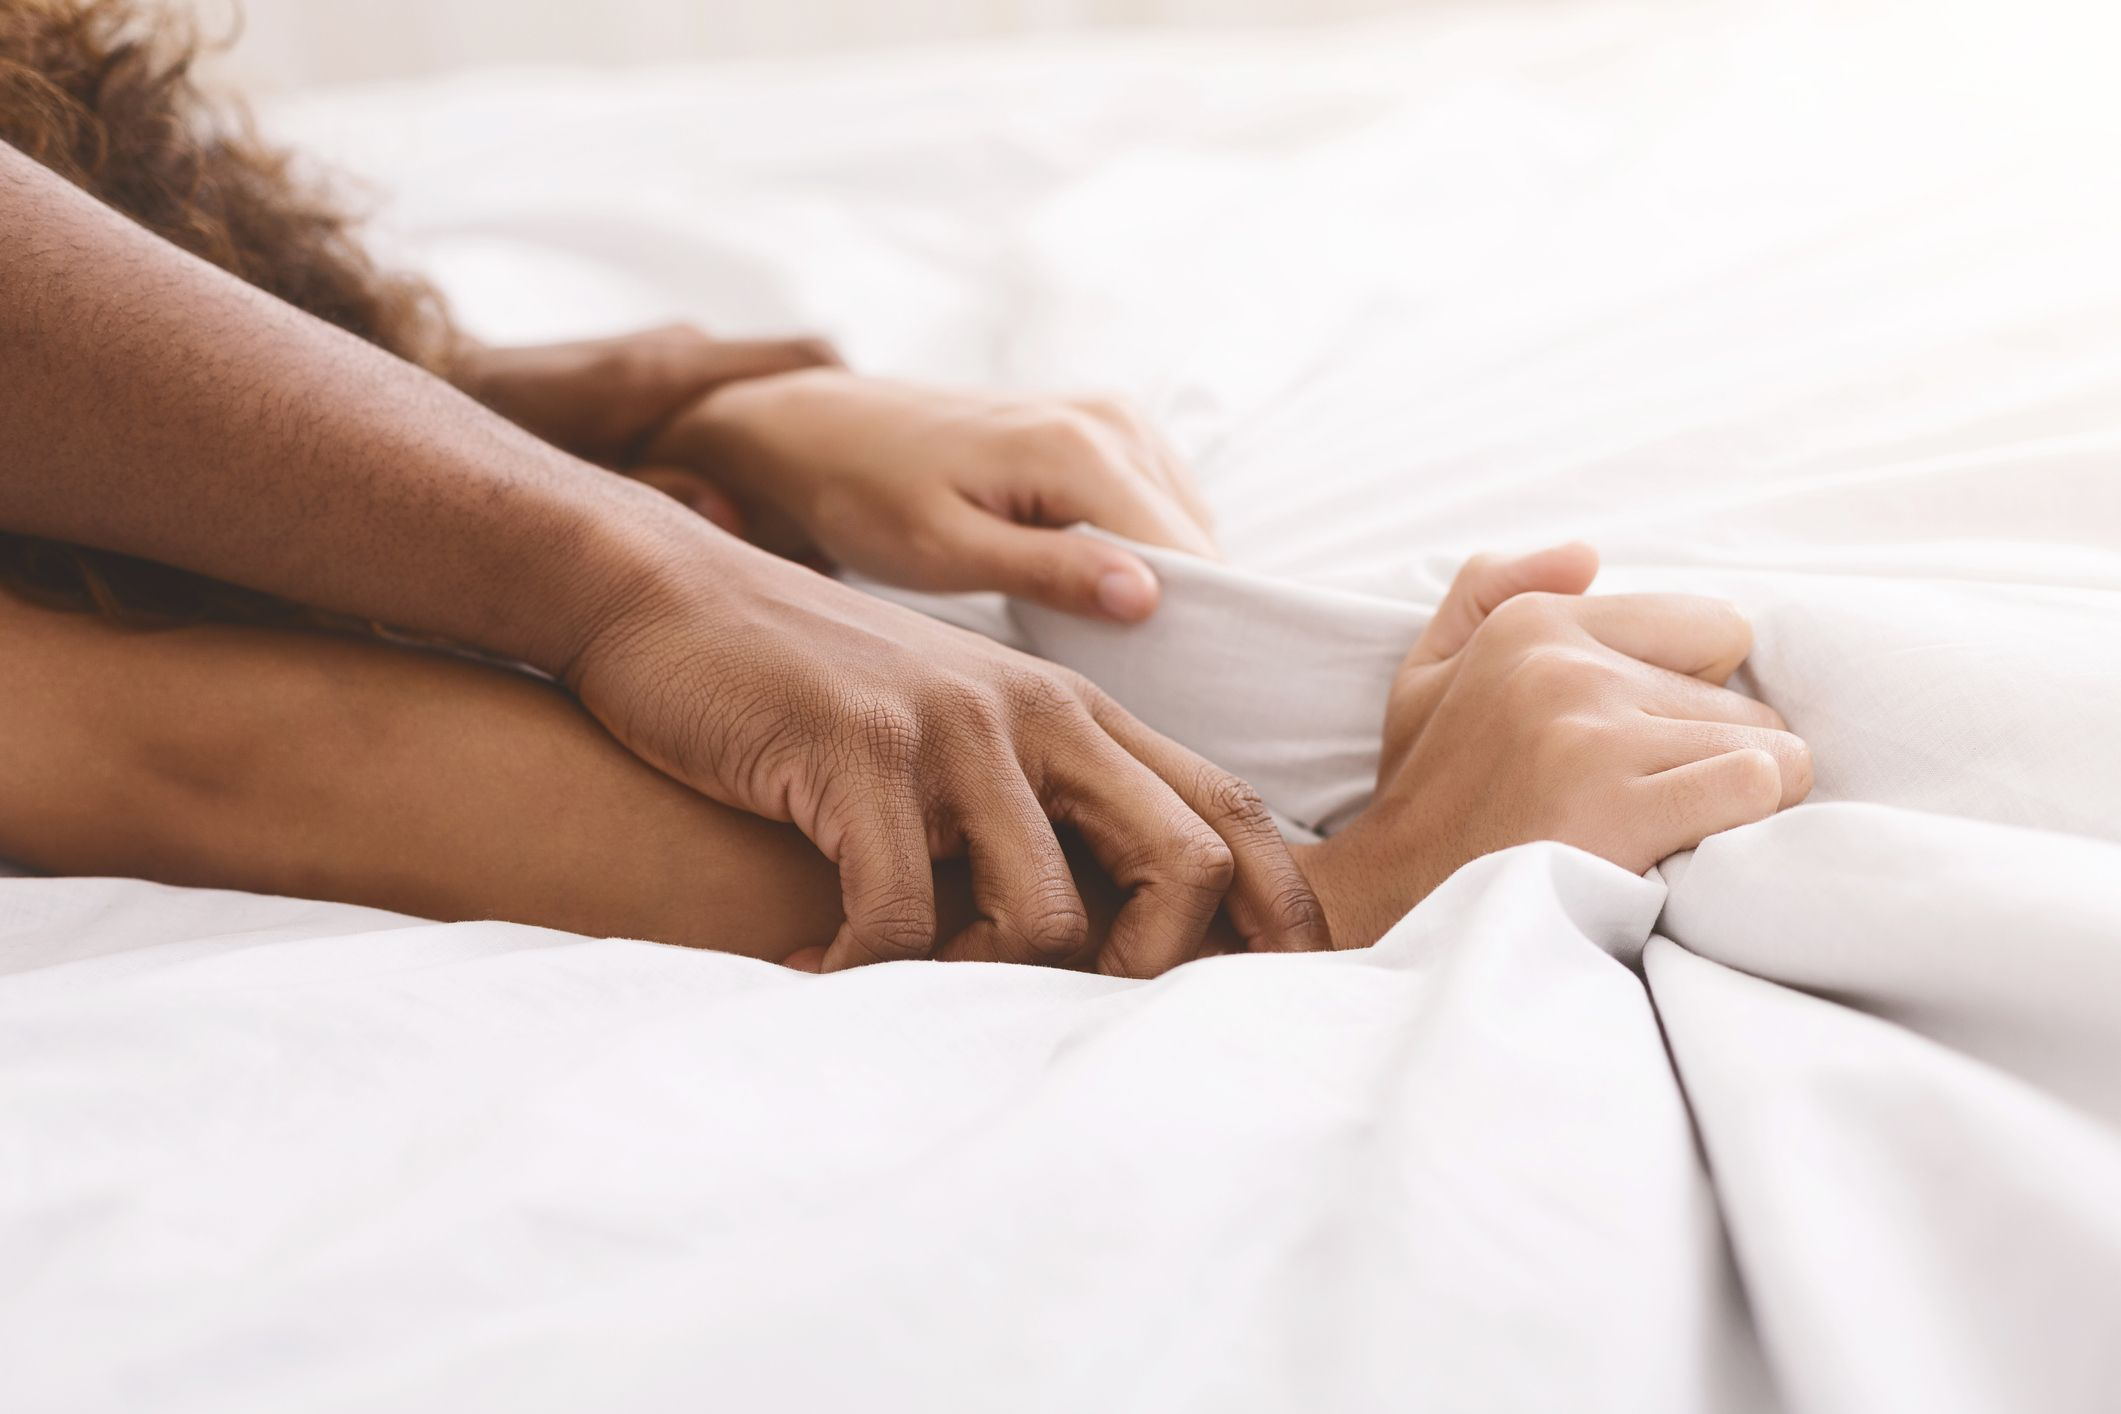 Everything You Need To Know About Having Sex On The First Date